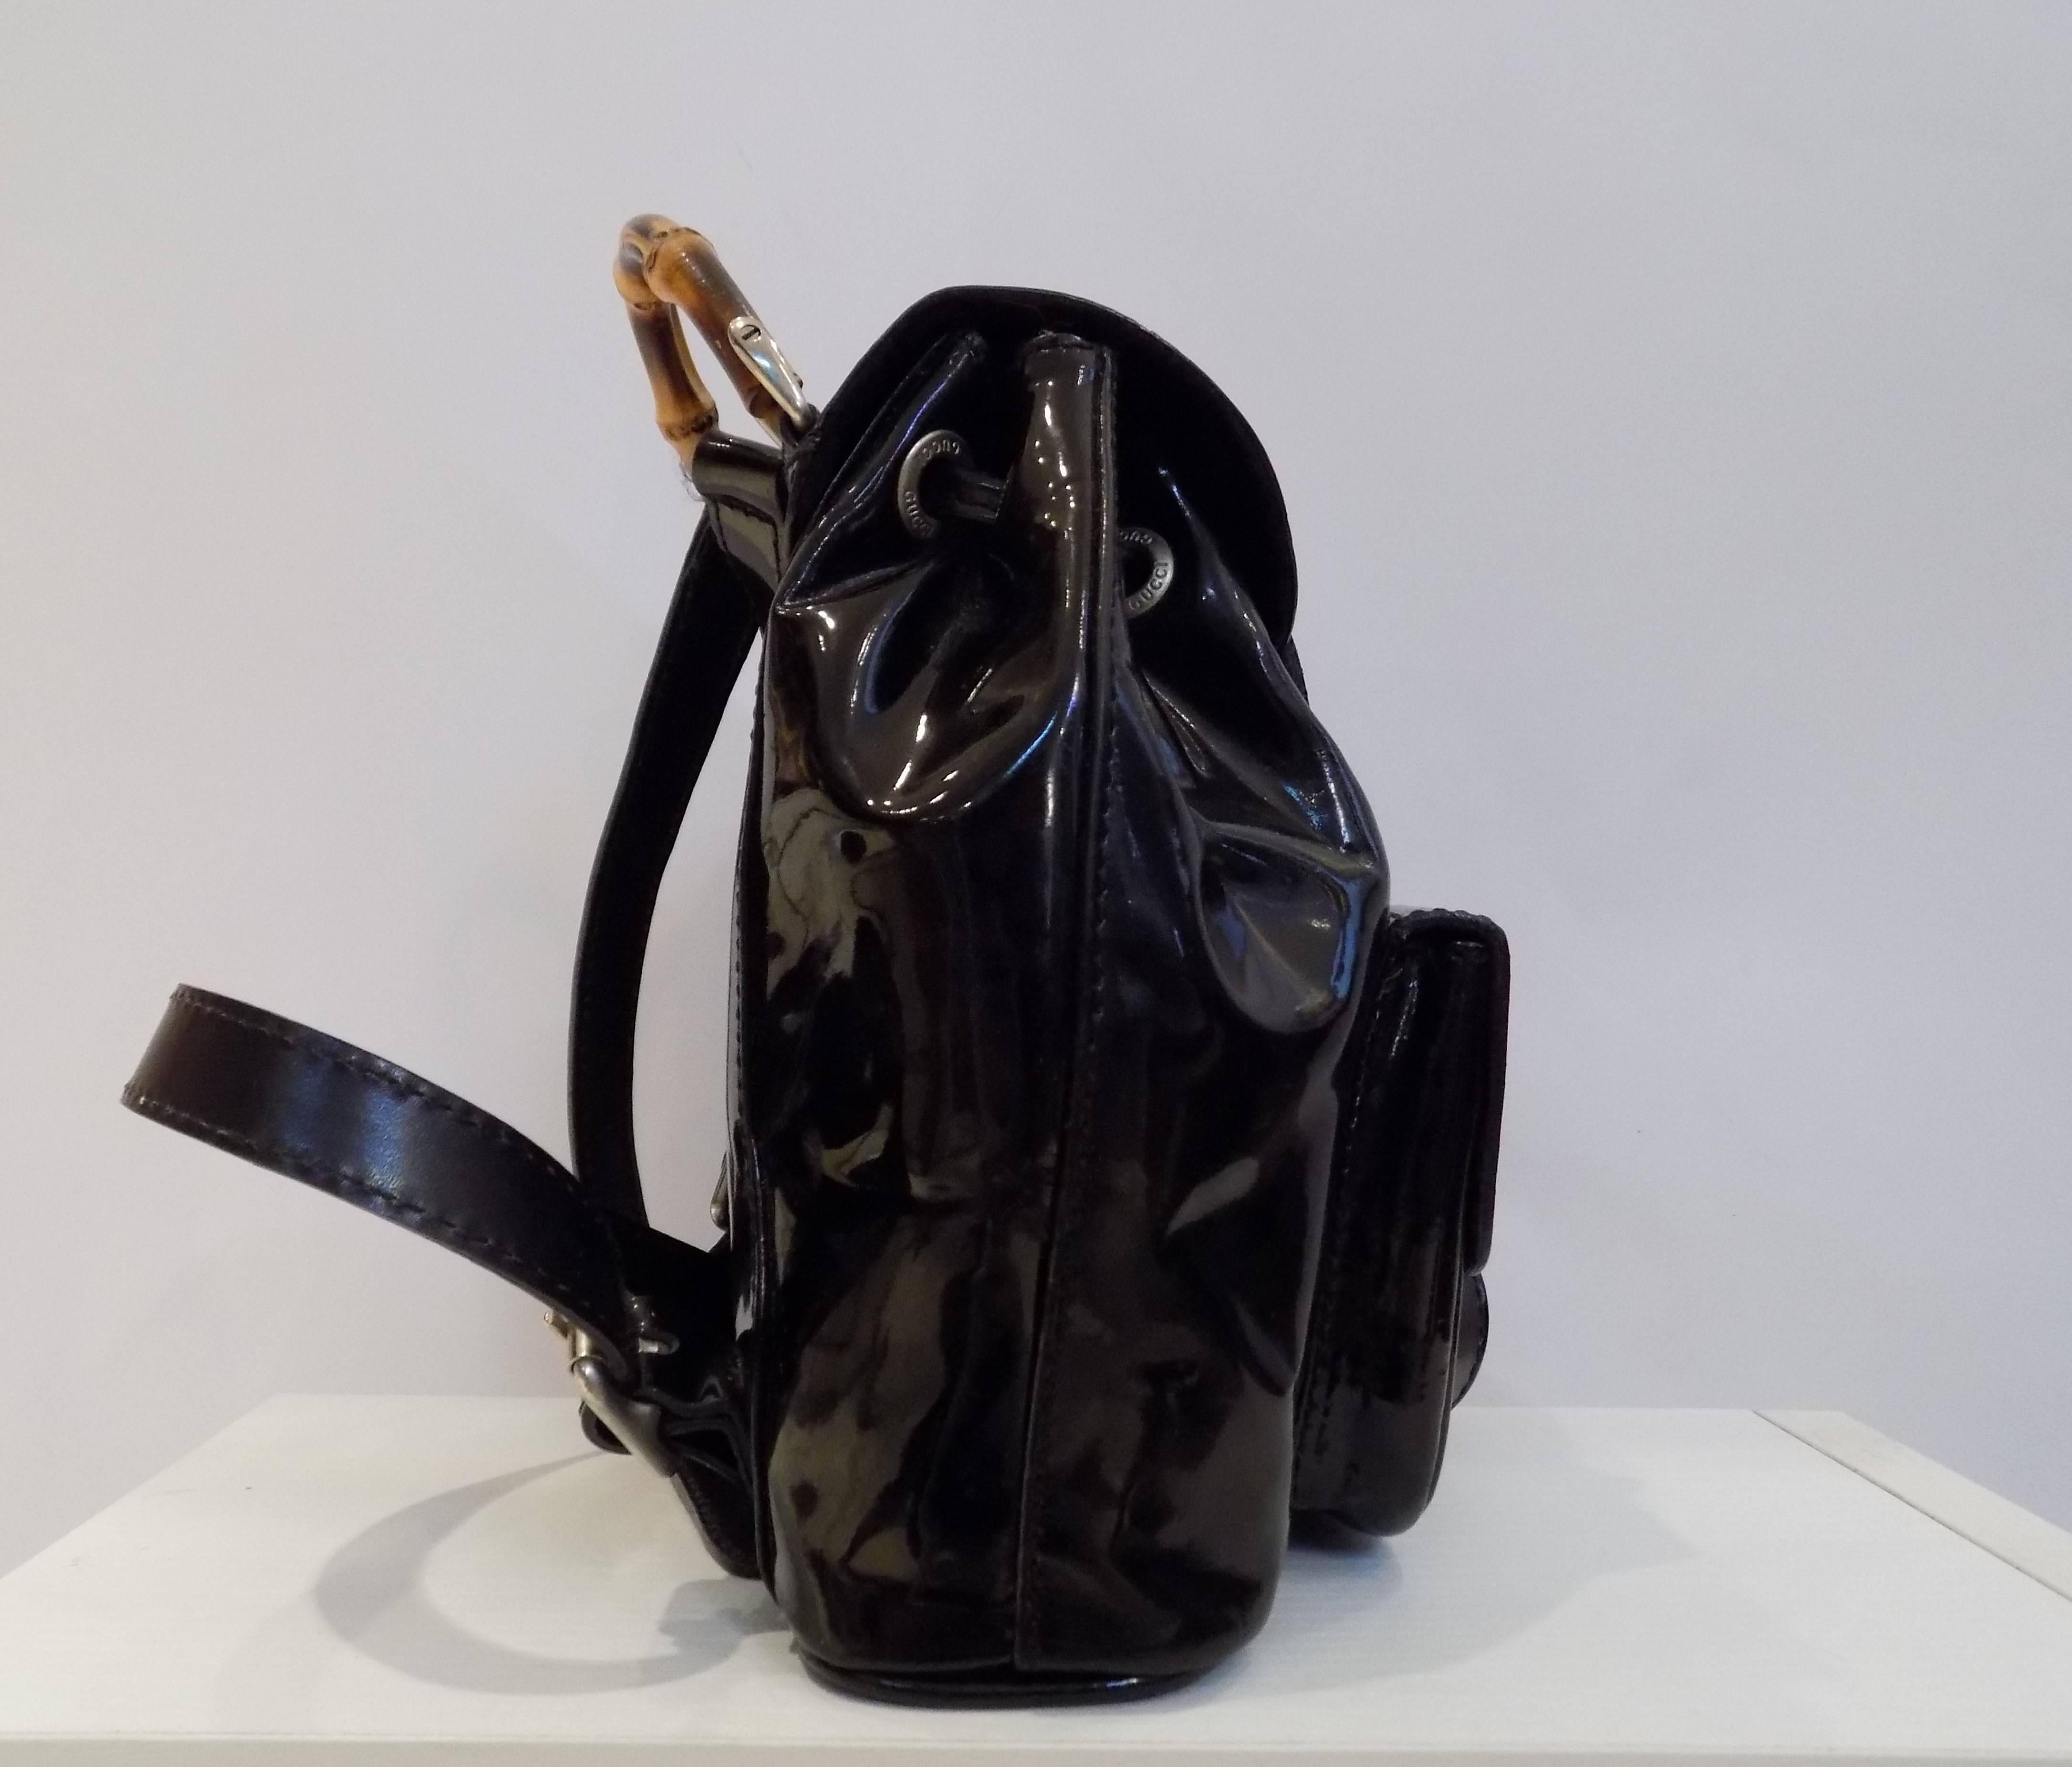 a1286eb5f6d Gucci Bamboo Black Varnish Leather Small Backpack at 1stdibs